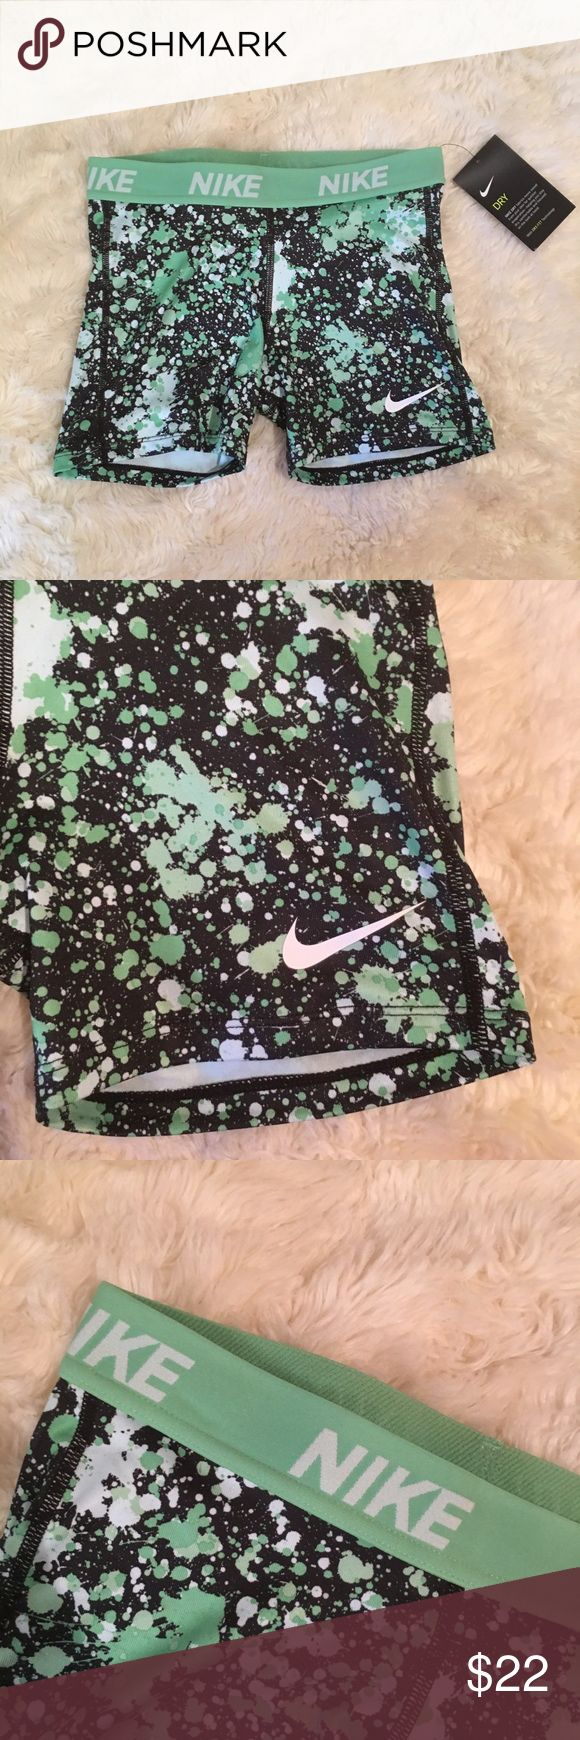 Nike pro shorts Nike pro dri fit workout shorts. New with tags. Girls size L is equivalent to a woman's size M. Nike Shorts